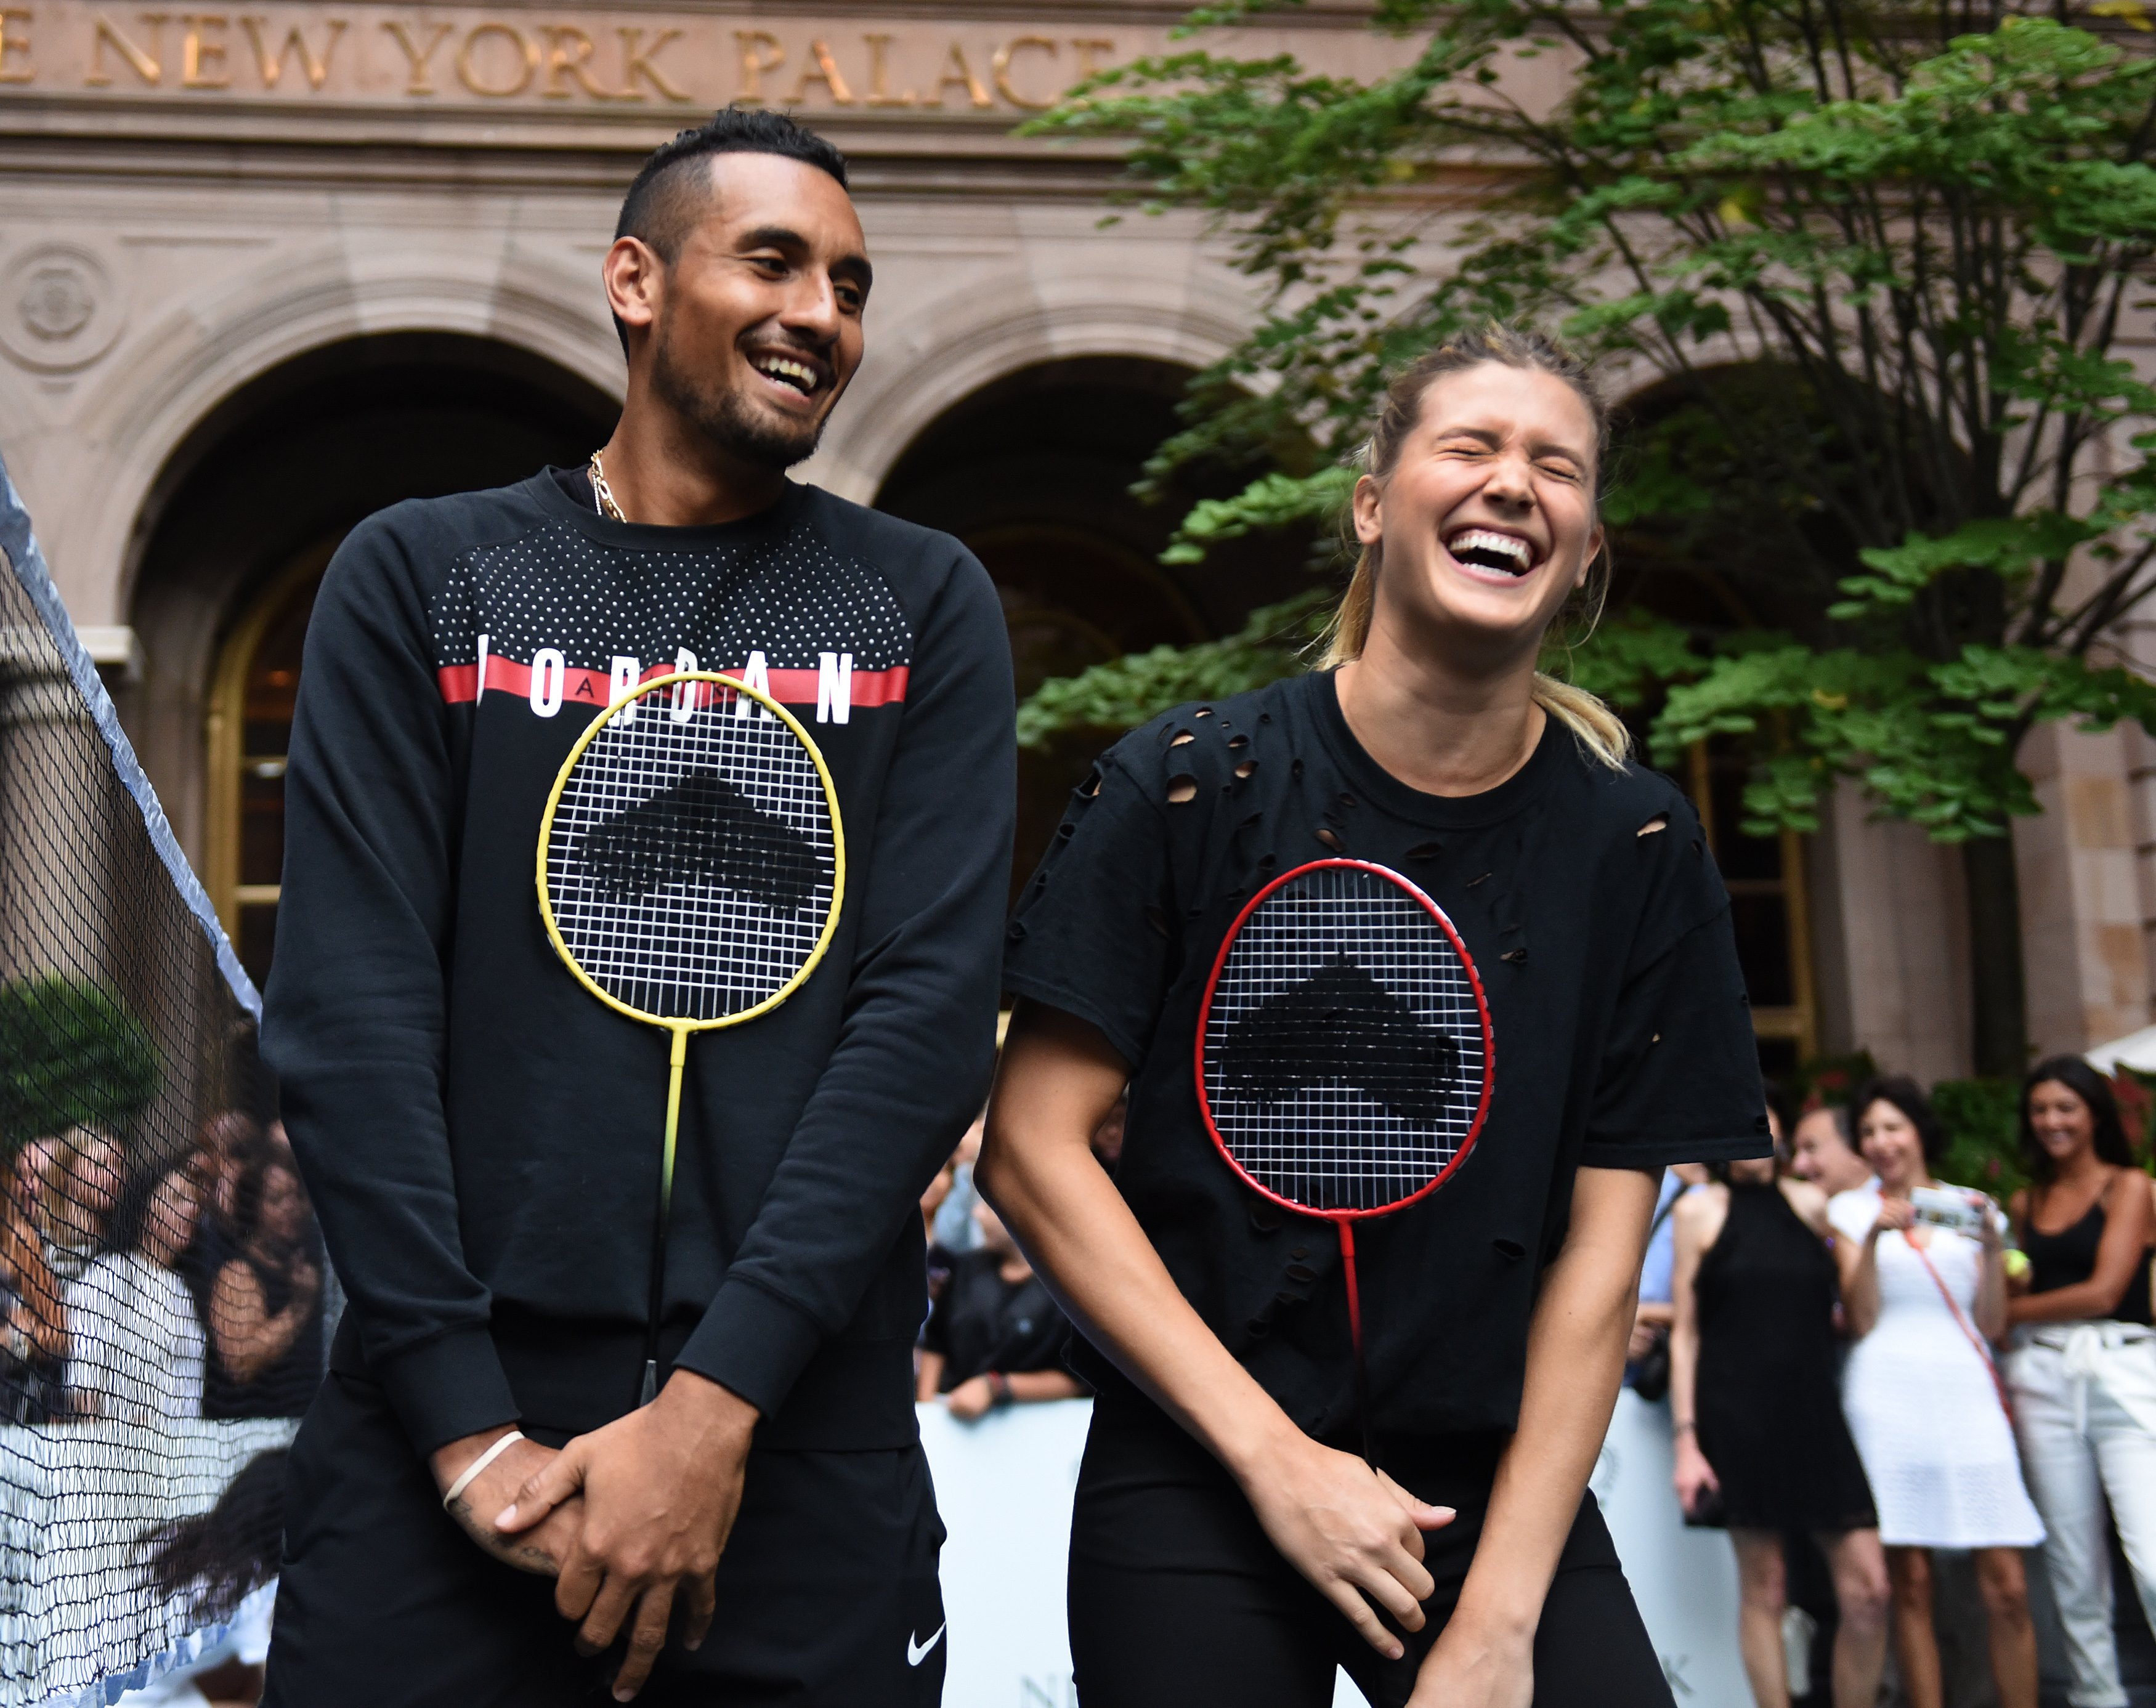 Tennis players Genie Bouchard of Canada (R) stands with Nick Kyrgioas of Australia (L) following their match in the Lotte New York Palace Invitational Badminton Tournament at the Lotte New York Palace in New York August 24, 2017. / AFP PHOTO / TIMOTHY A. CLARY        (Photo credit should read TIMOTHY A. CLARY/AFP/Getty Images)